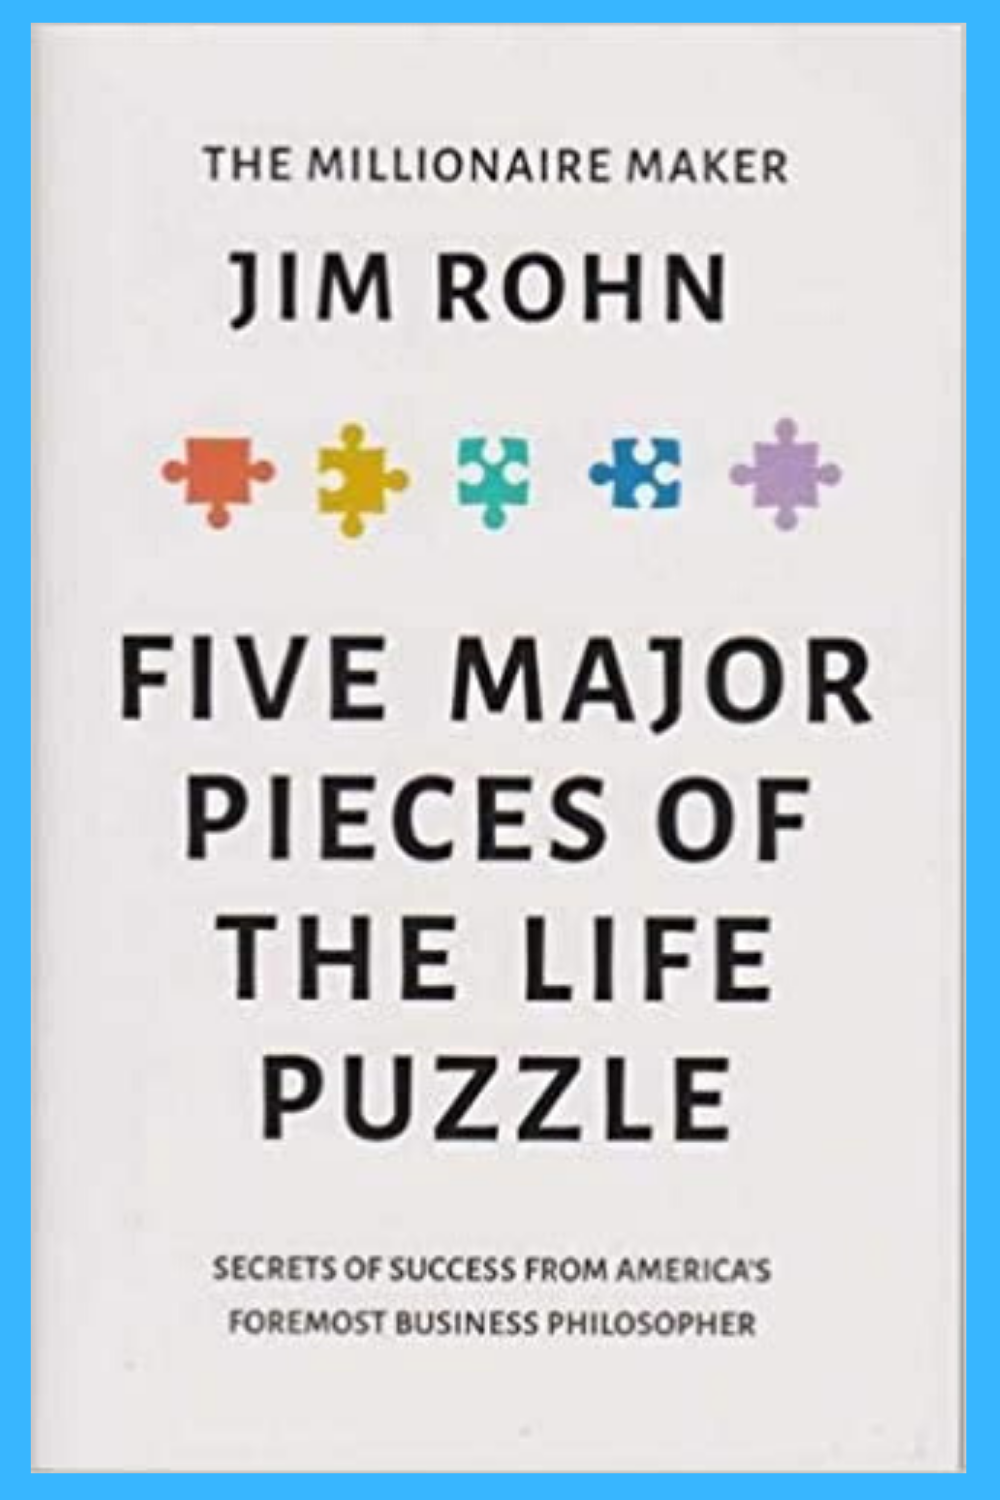 The Five Major Pieces To The Life Puzzle By Jim Rohn Philosophy Secret To Success Life Philosophy